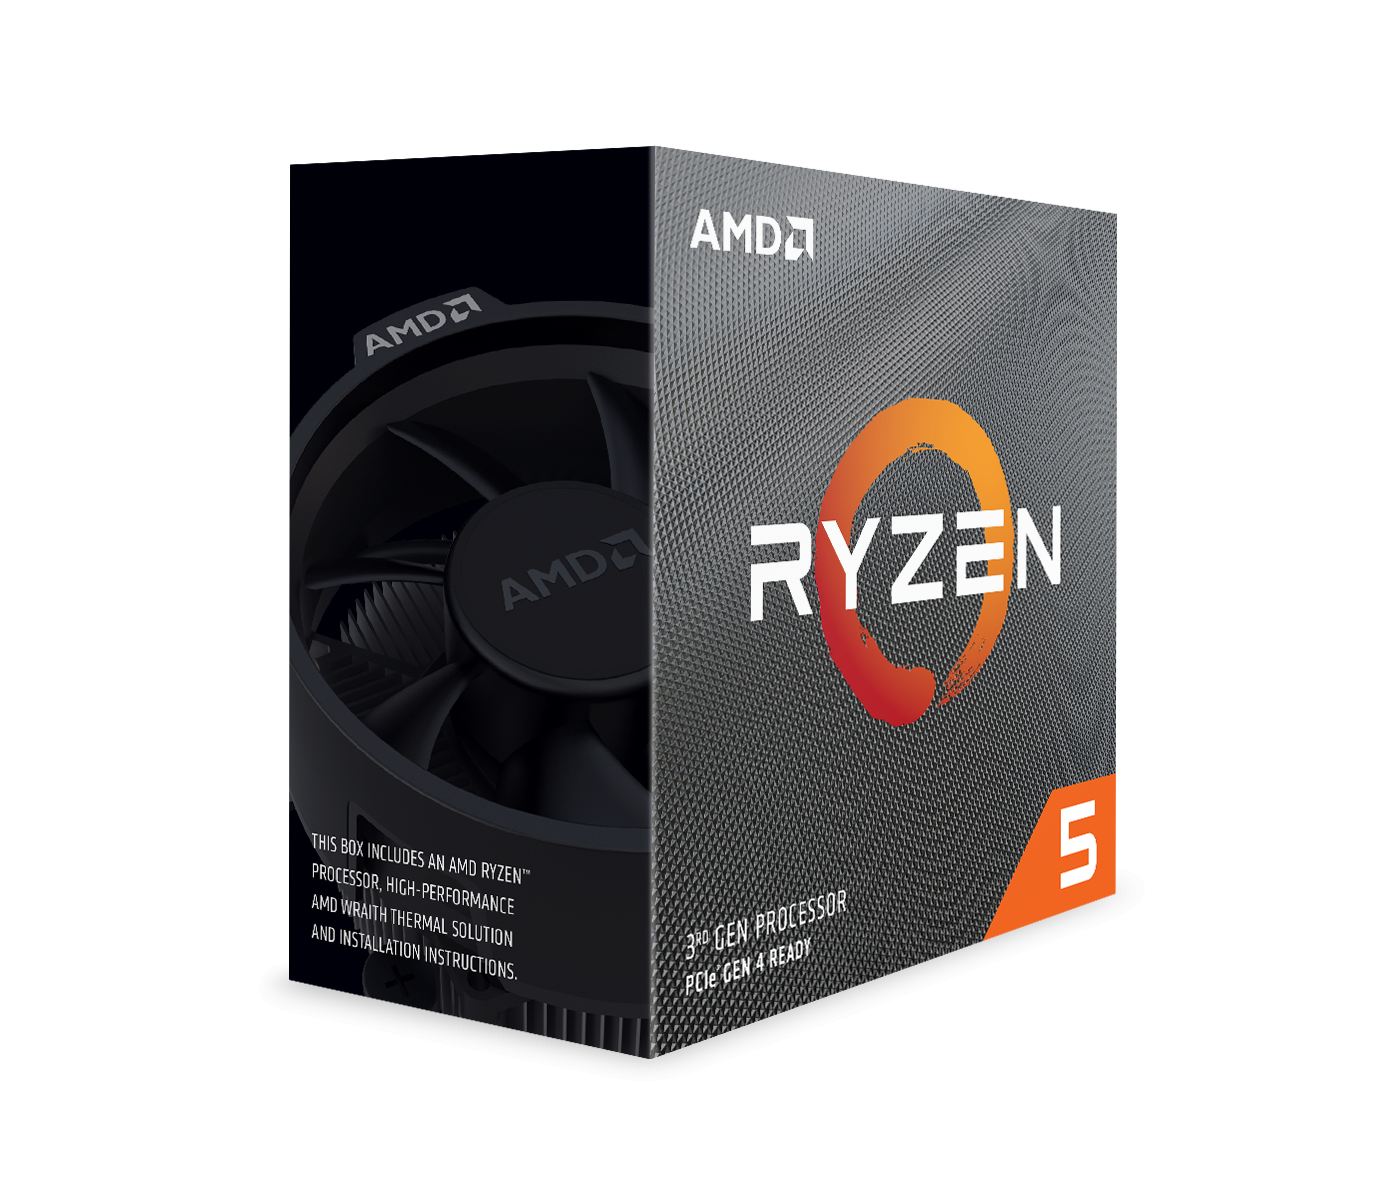 Процесор AMD RYZEN 5 3600 6-Core 3.6 GHz (4.2 GHz Turbo) 35MB/65W/AM4/BOX